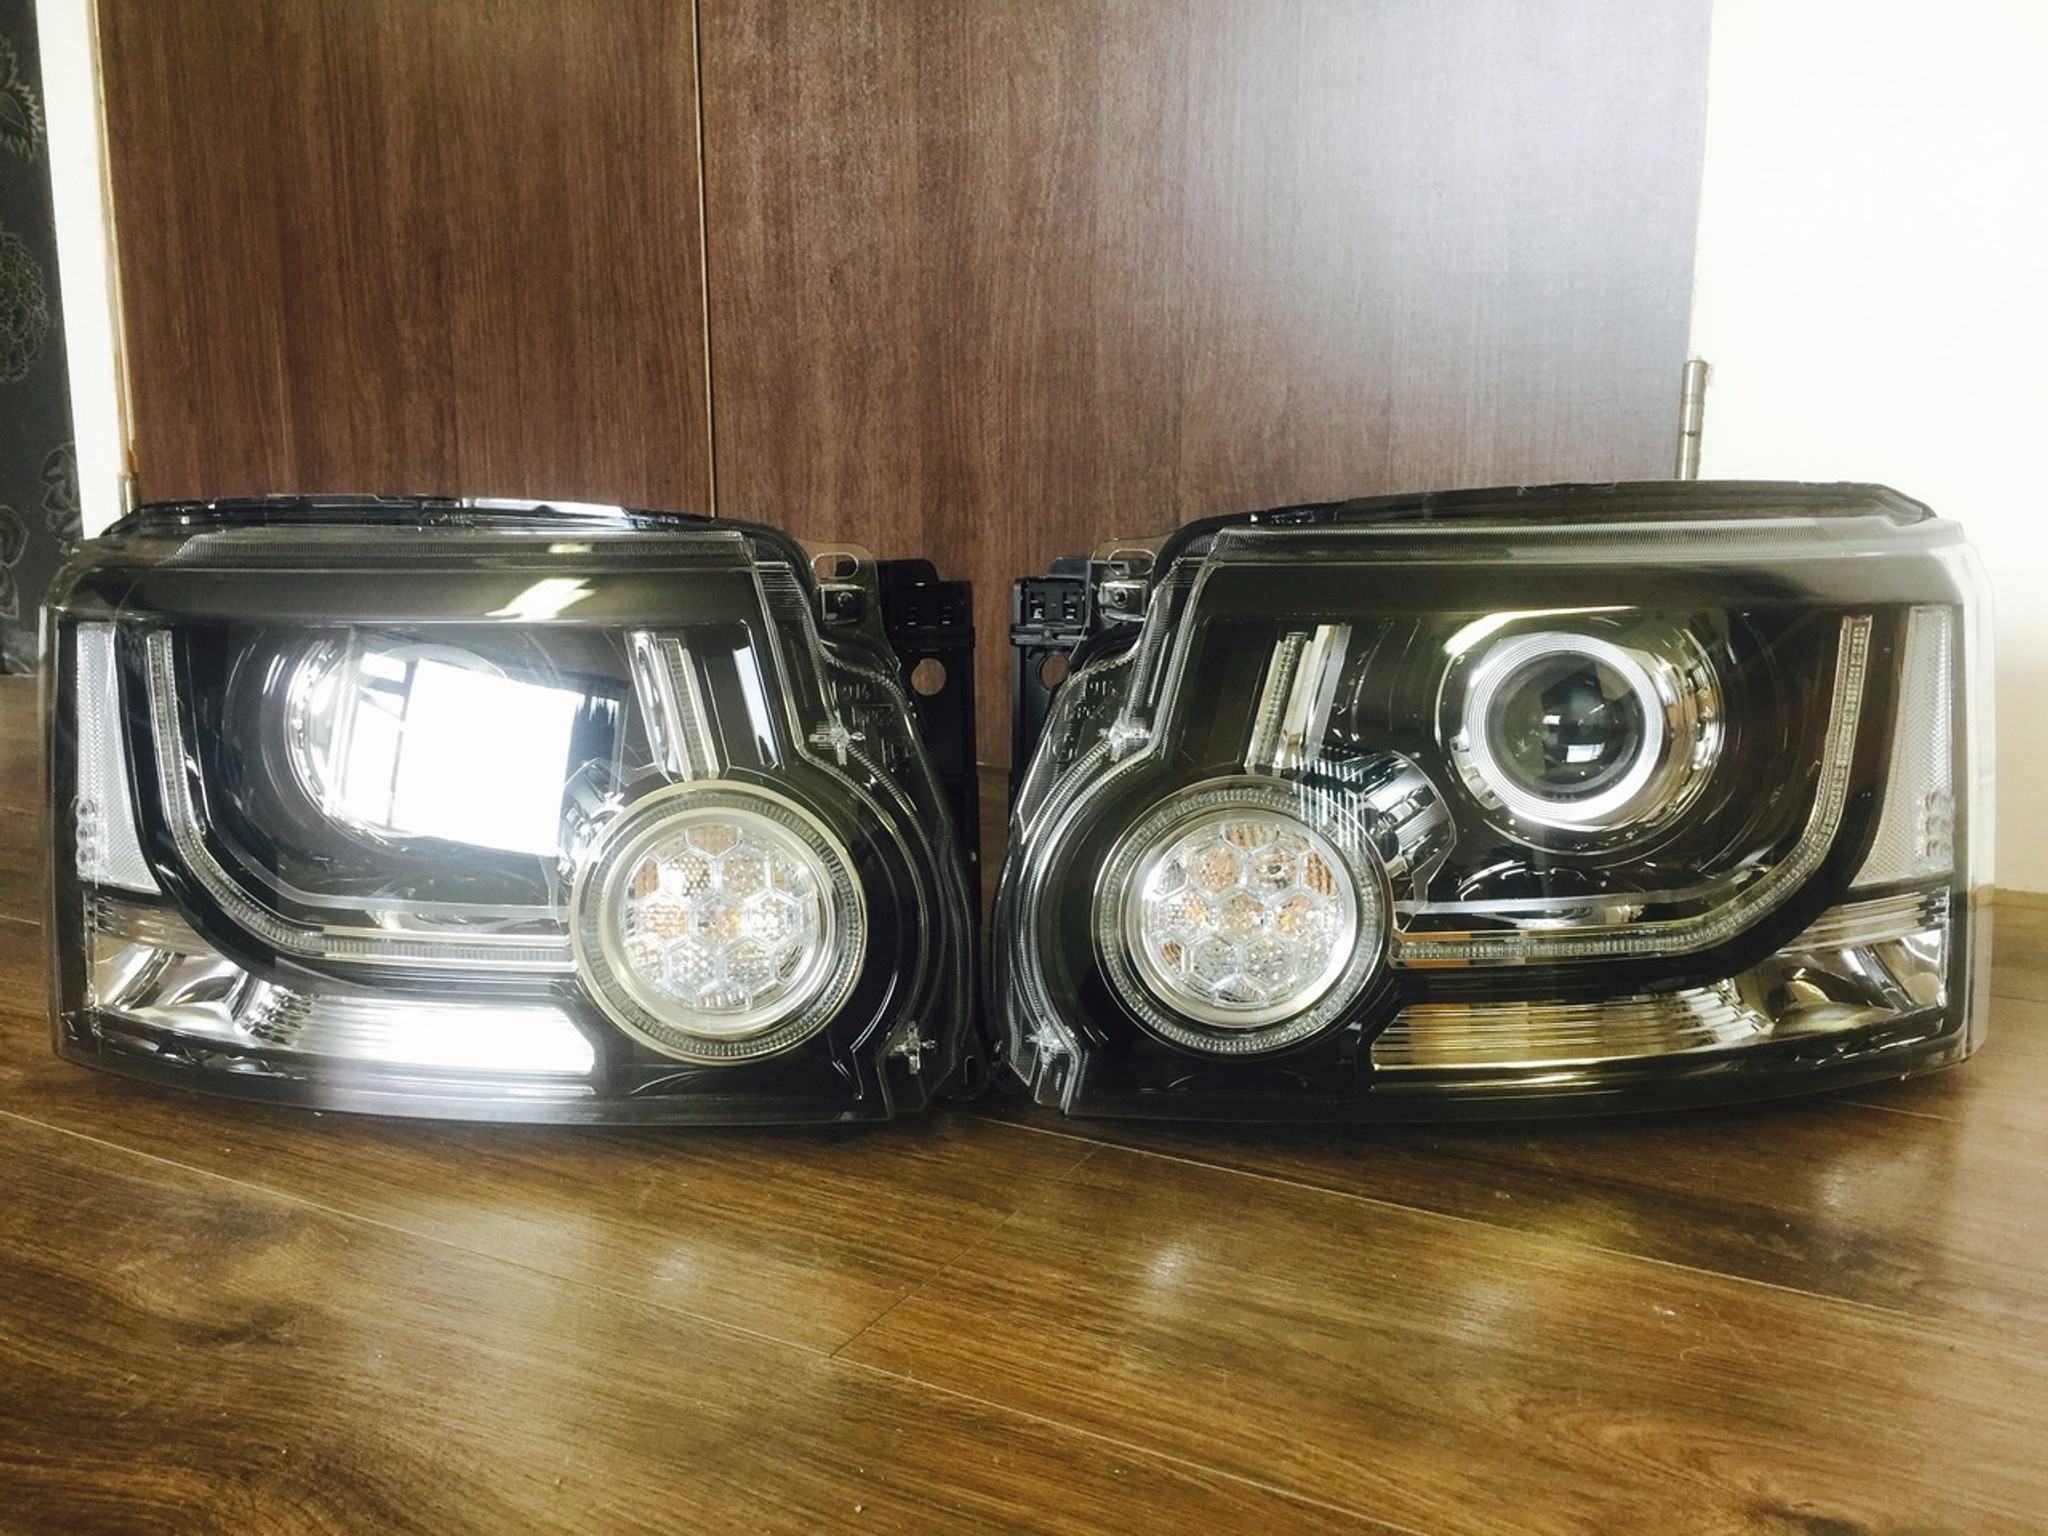 Land Rover Discovery 4 Signature Black Edition Headlights